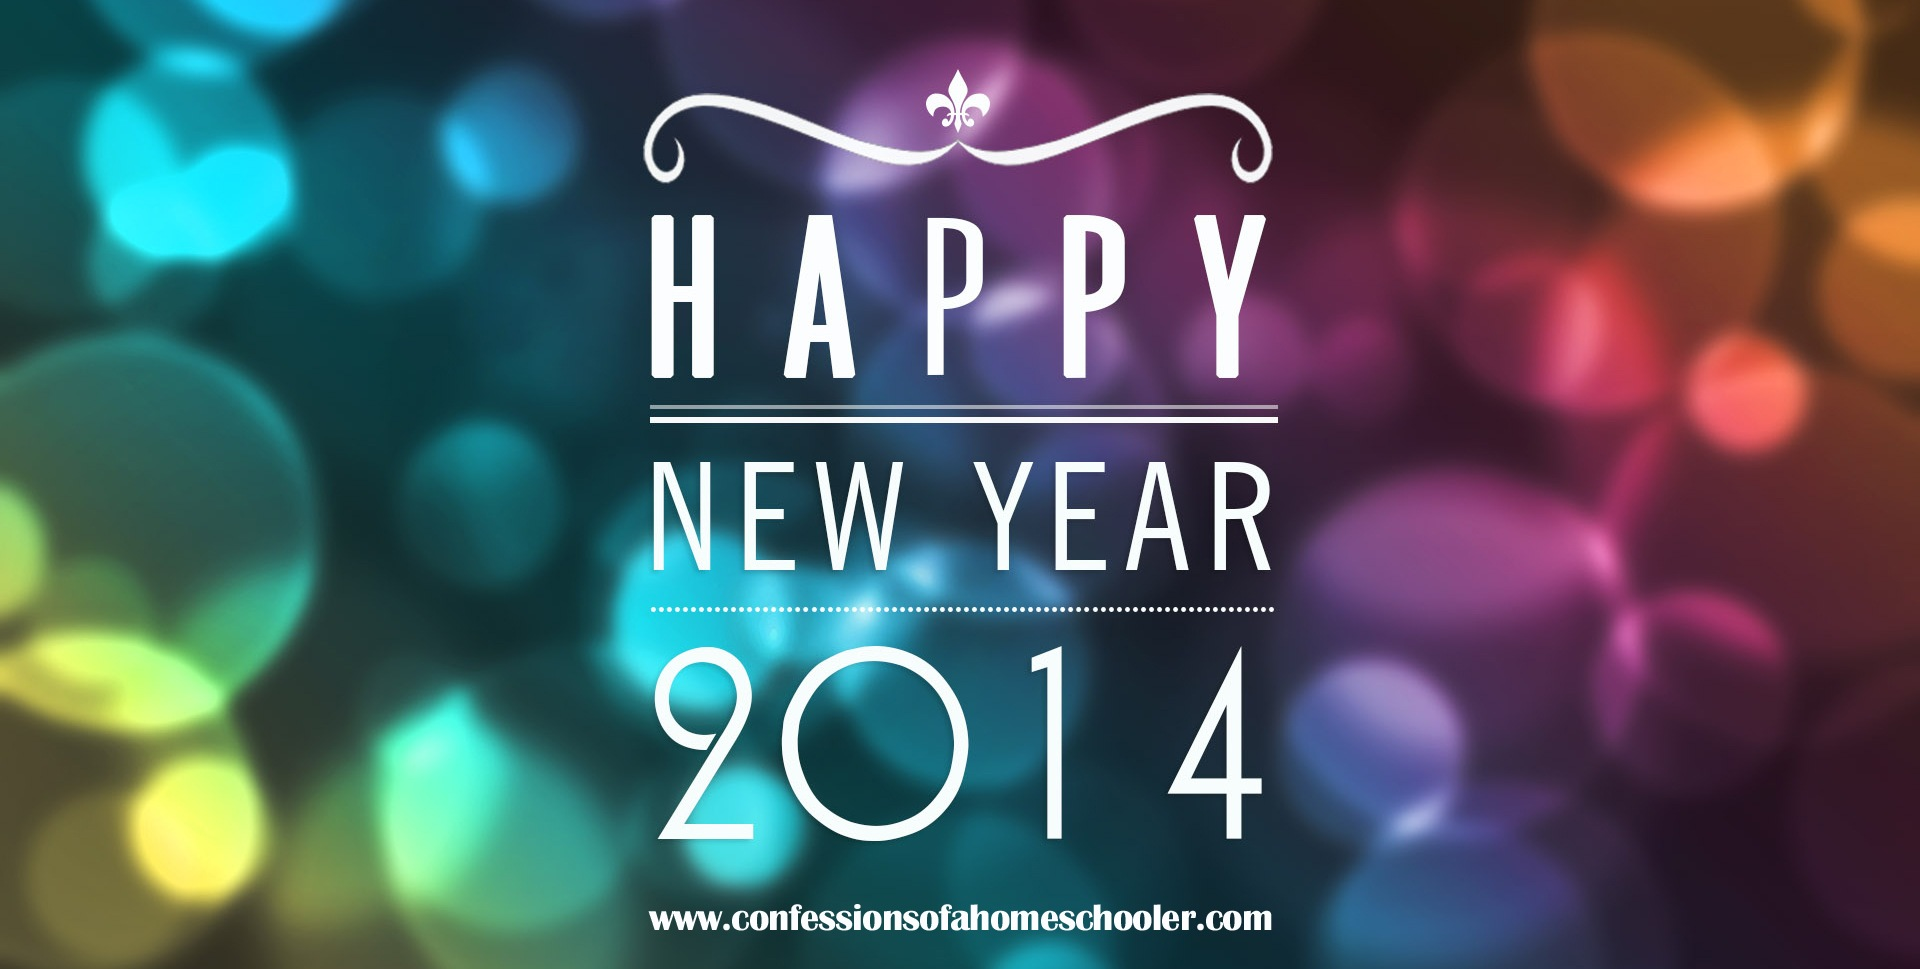 Happy New Year 2014!